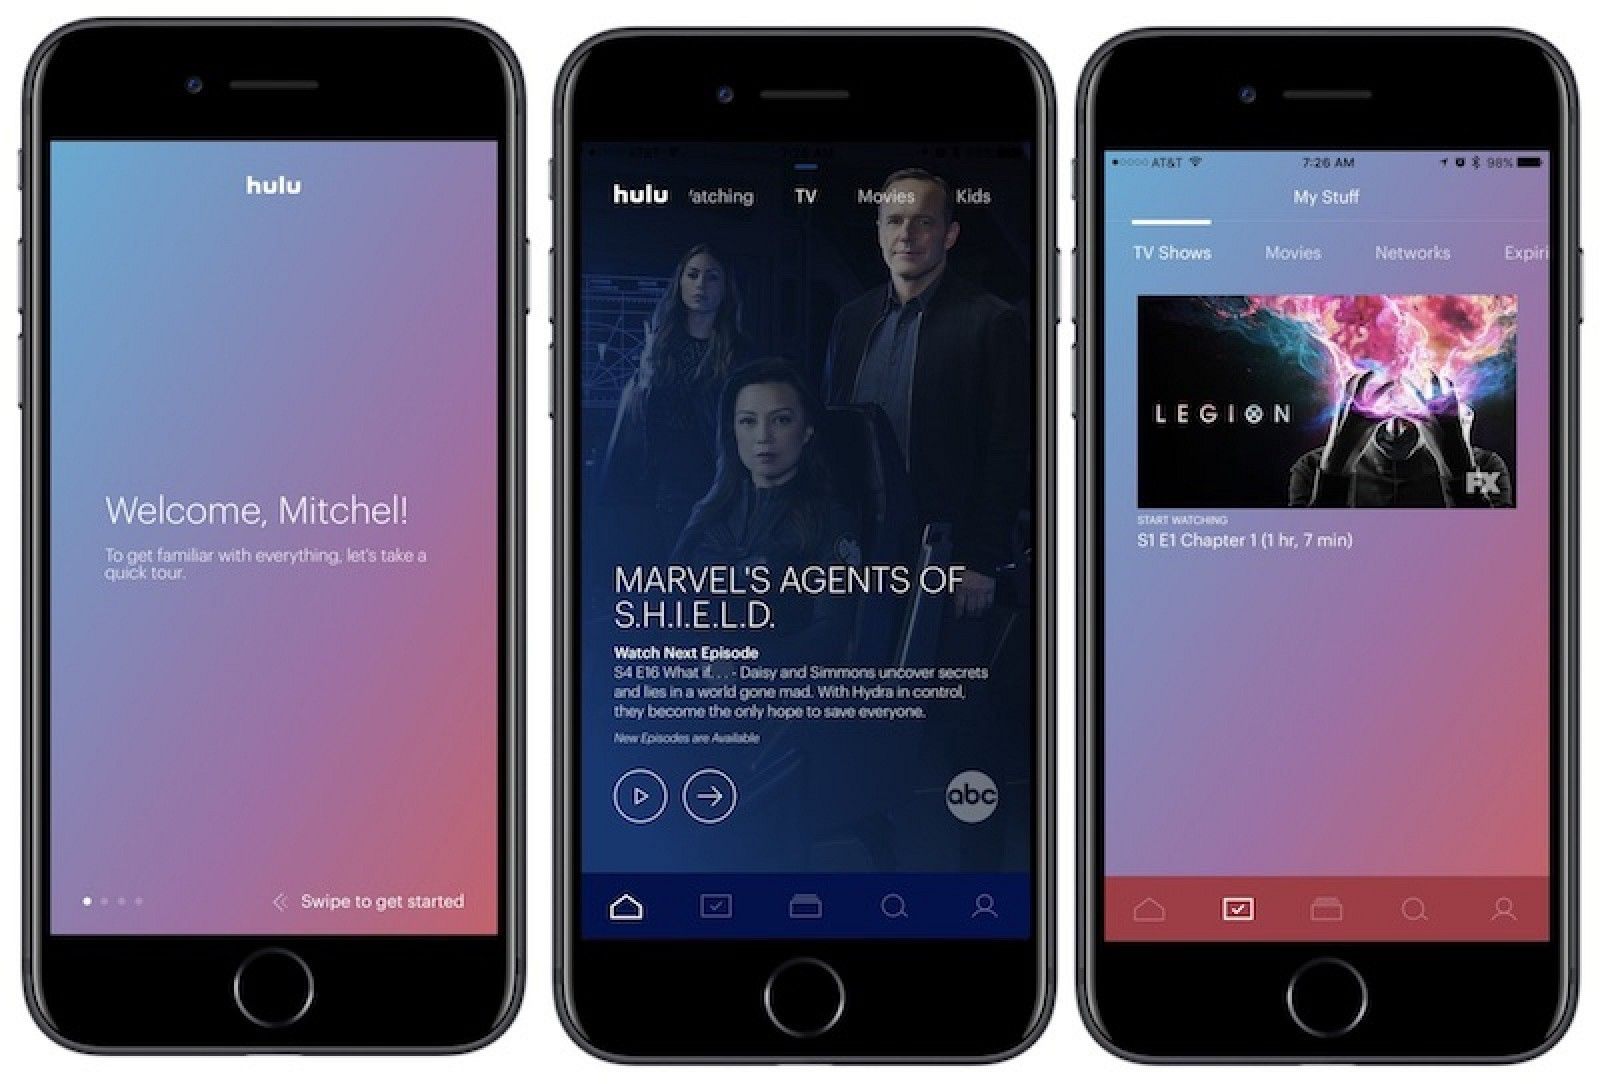 Complete details about Hulu mobile application